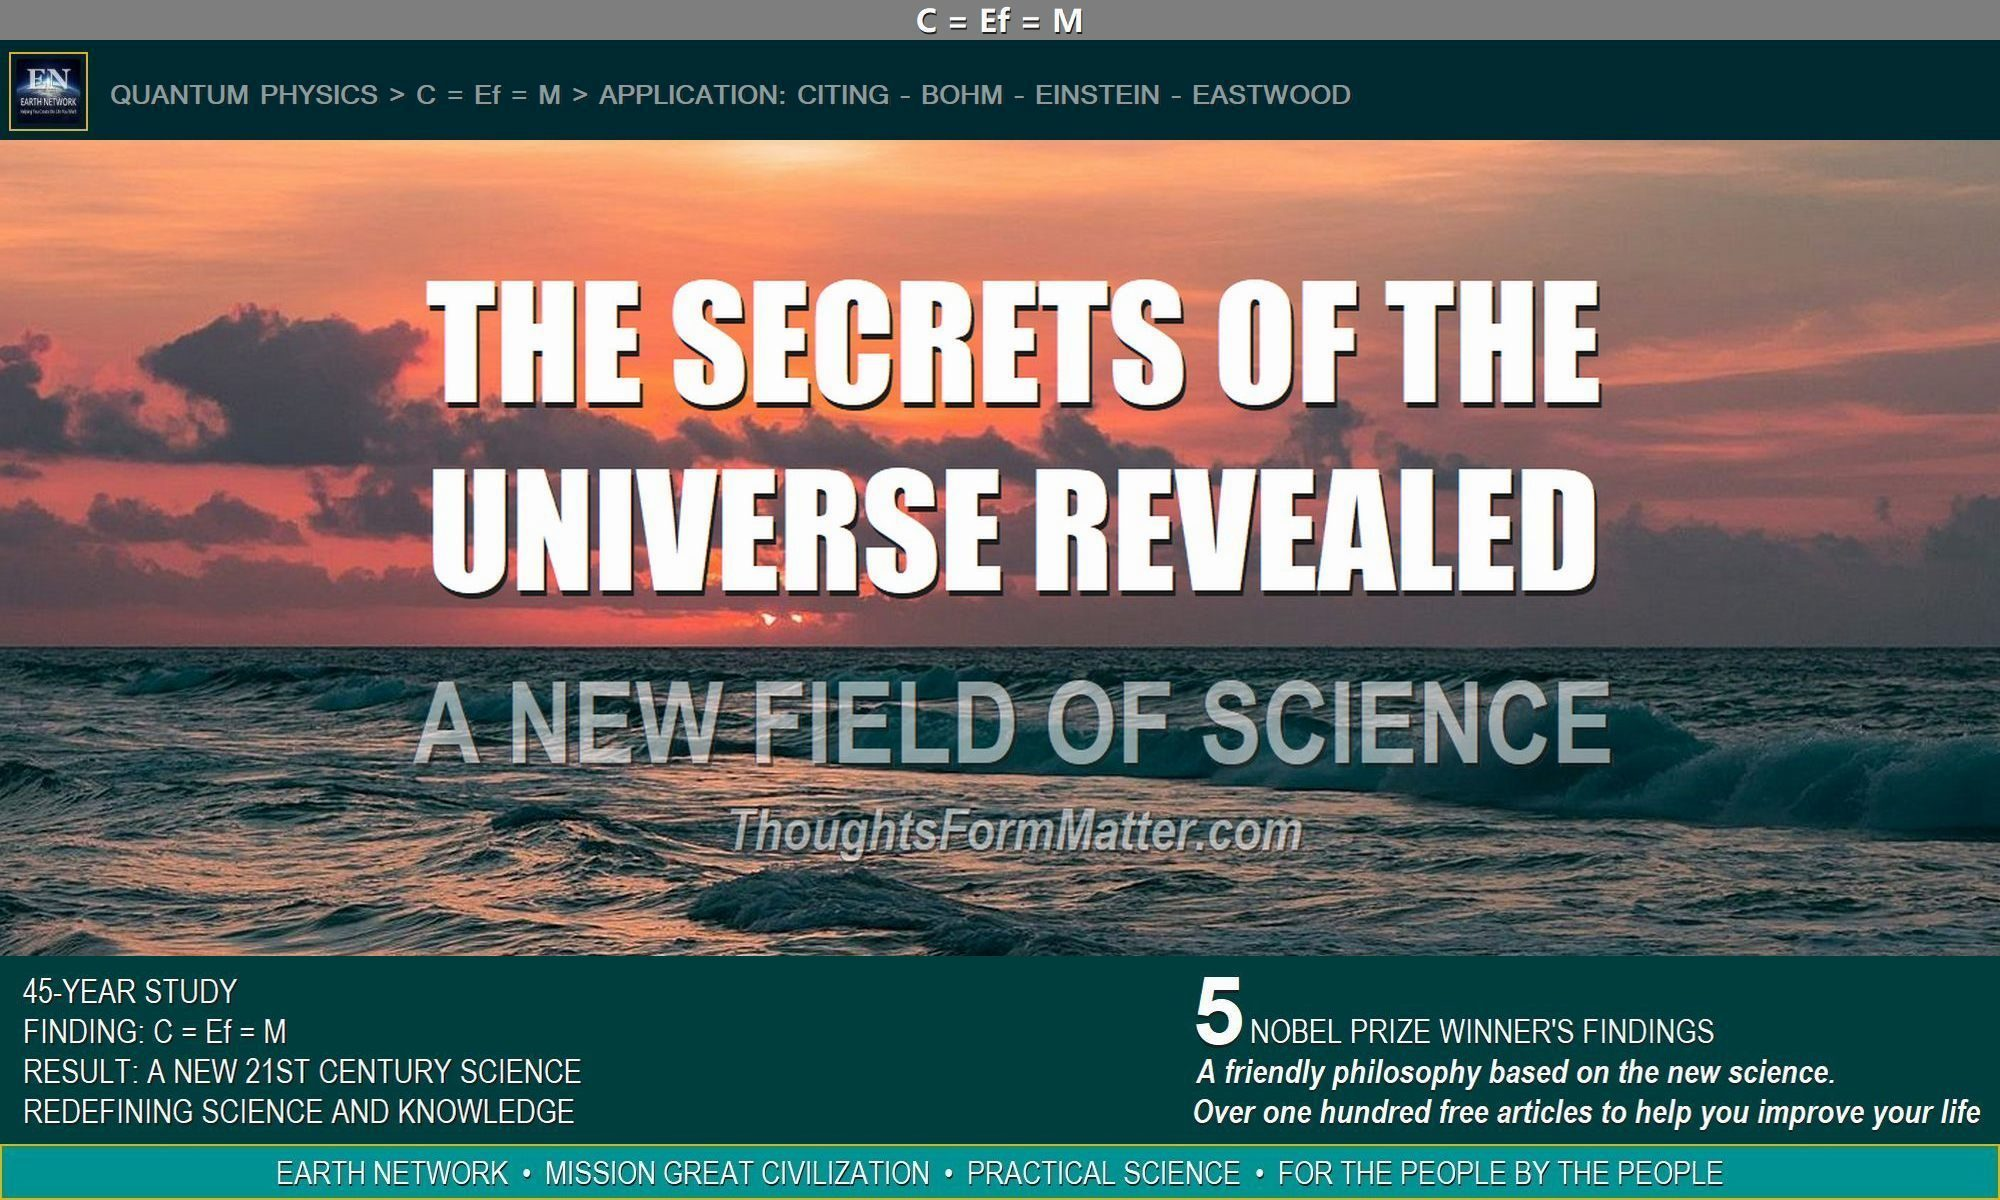 Sunset depicts the secrets of the universe revealed and EN's new science.